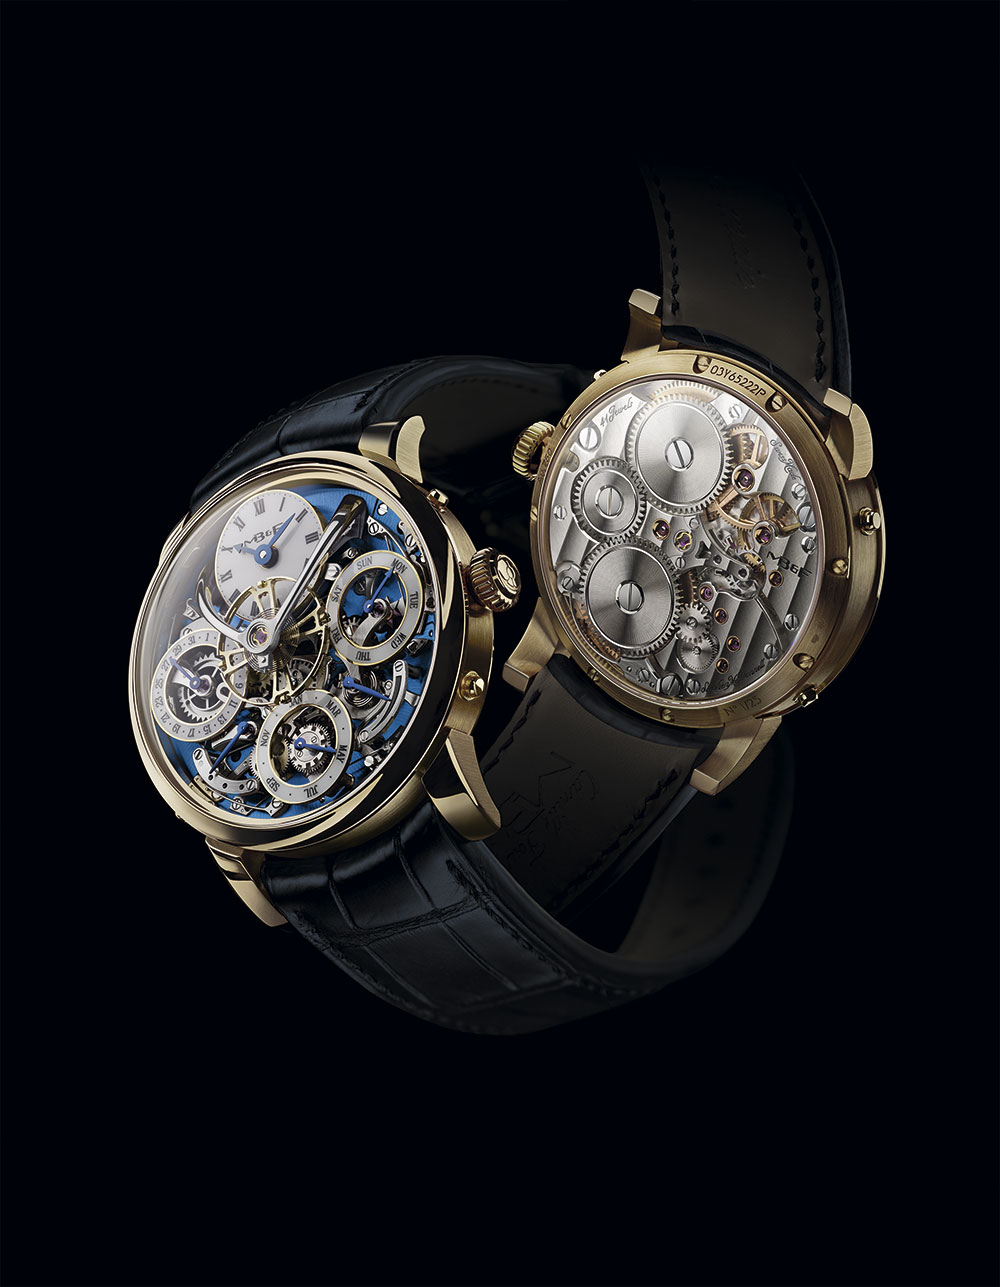 Anverso y reverso del MB&F LM Perpetual